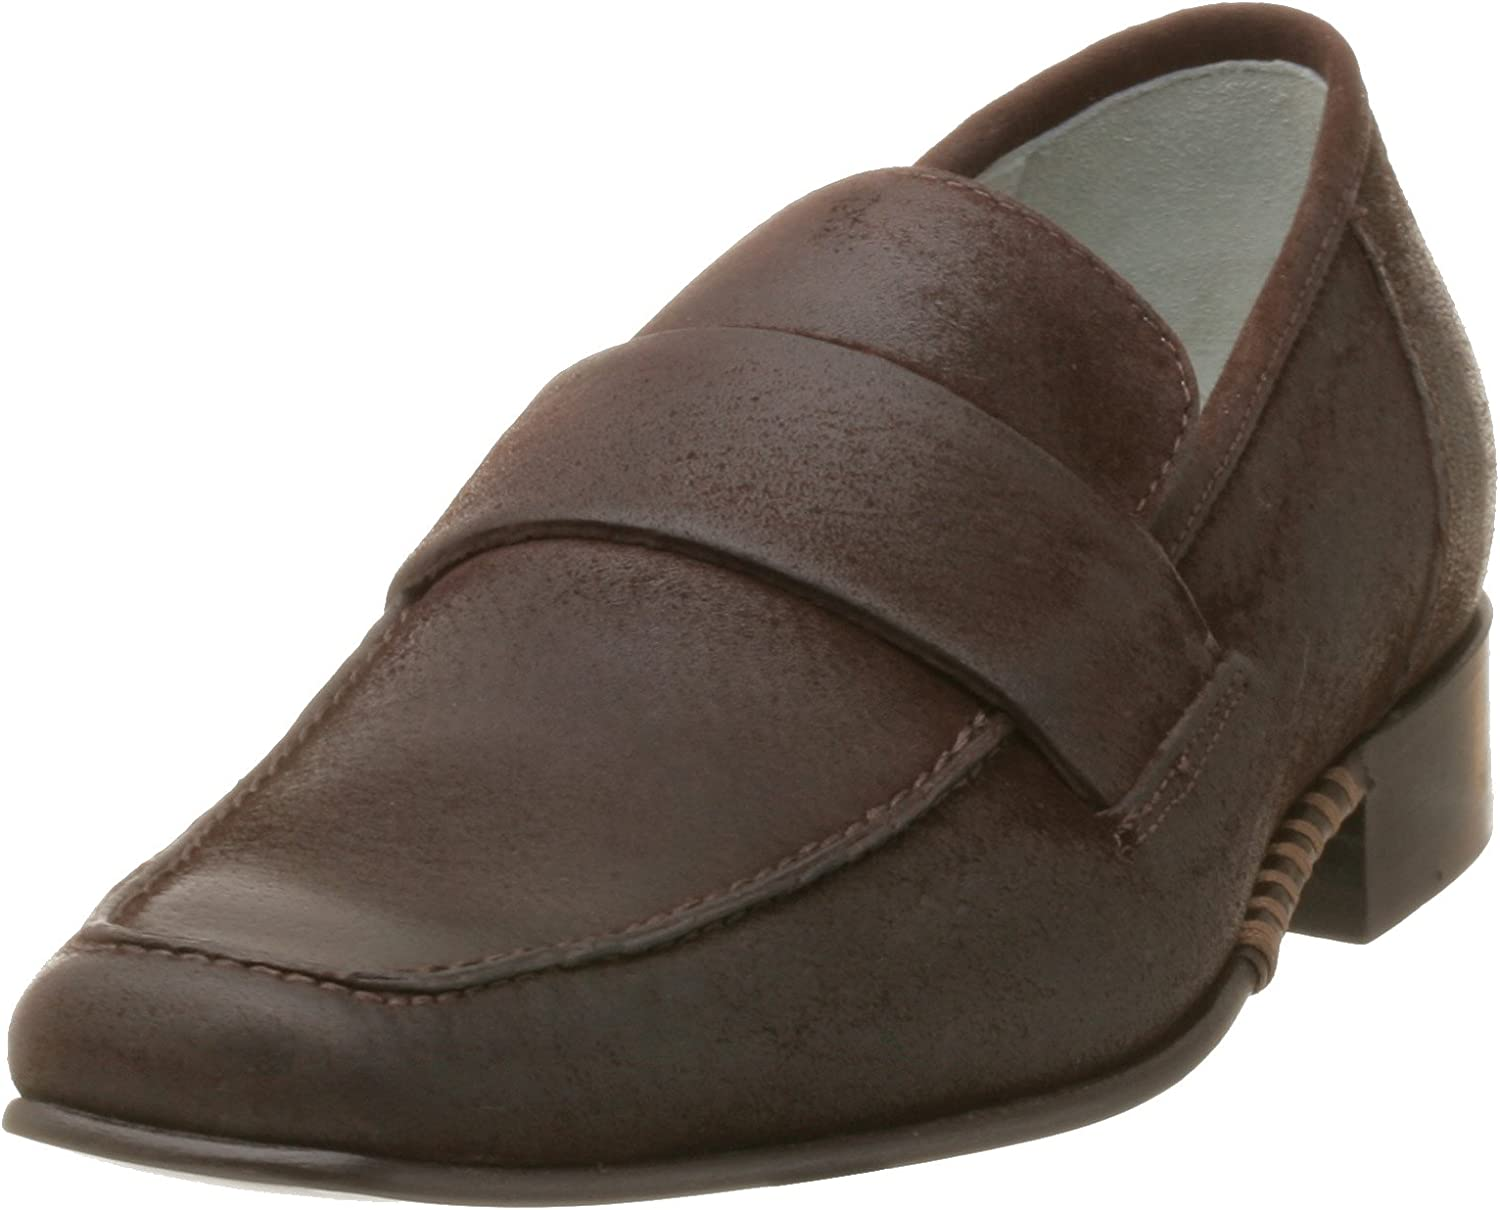 Kenneth Cole New York Men's Grand Stand Loafer